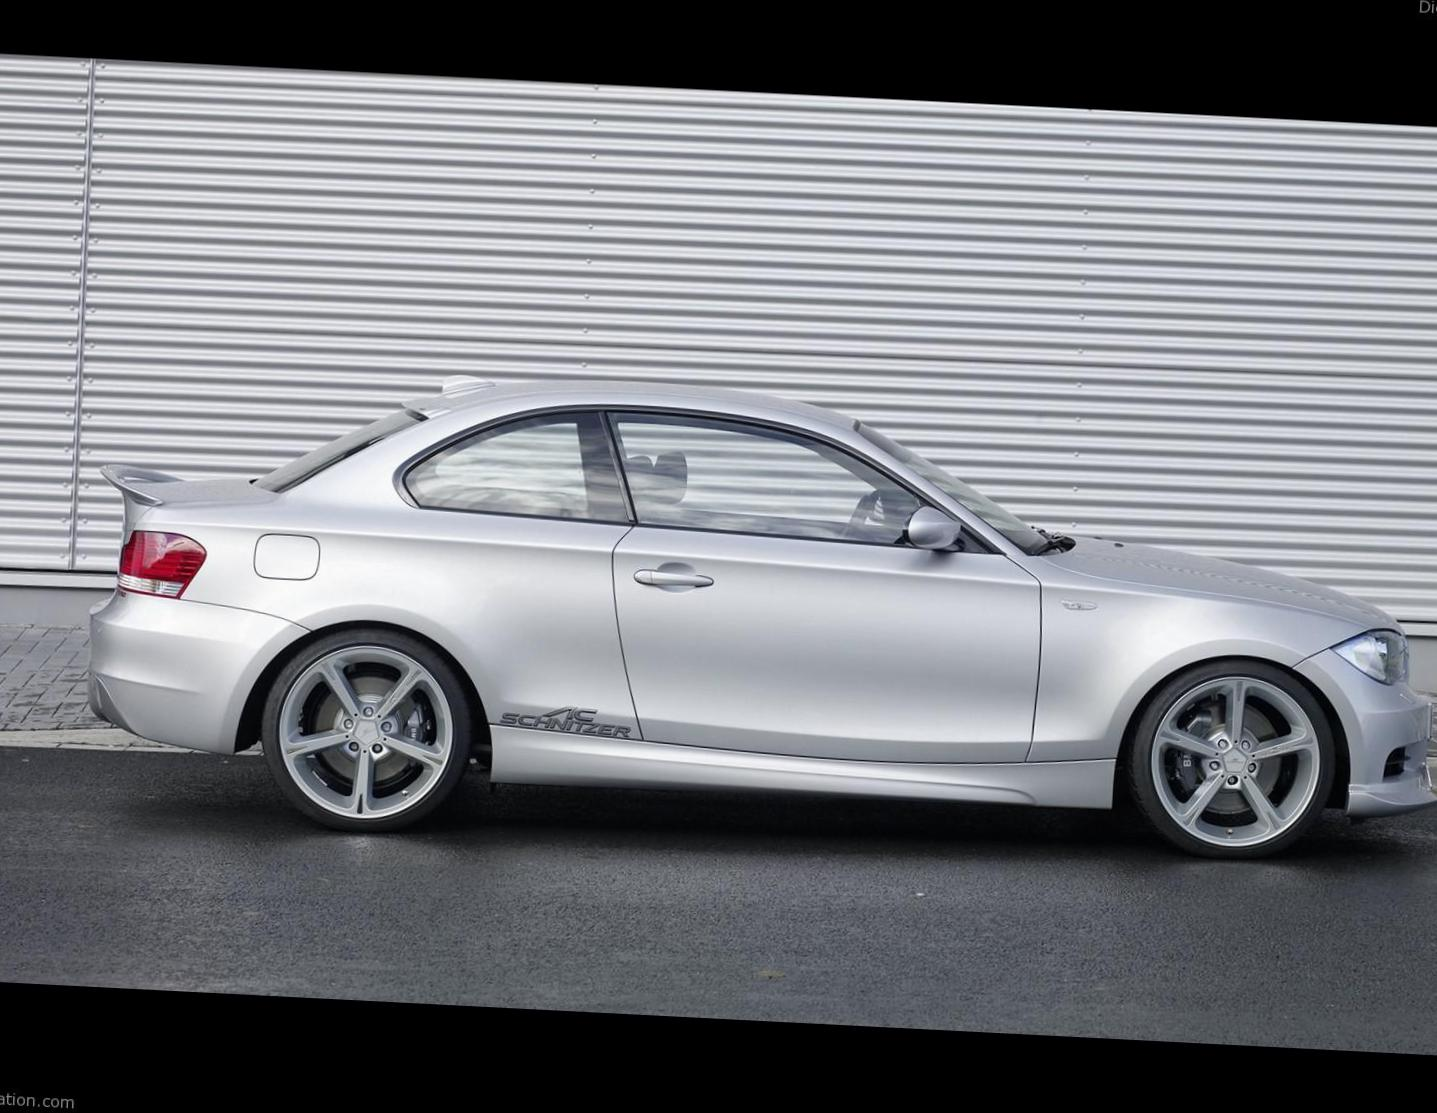 bmw 1 series coupe e82 photos and specs photo 1 series. Black Bedroom Furniture Sets. Home Design Ideas